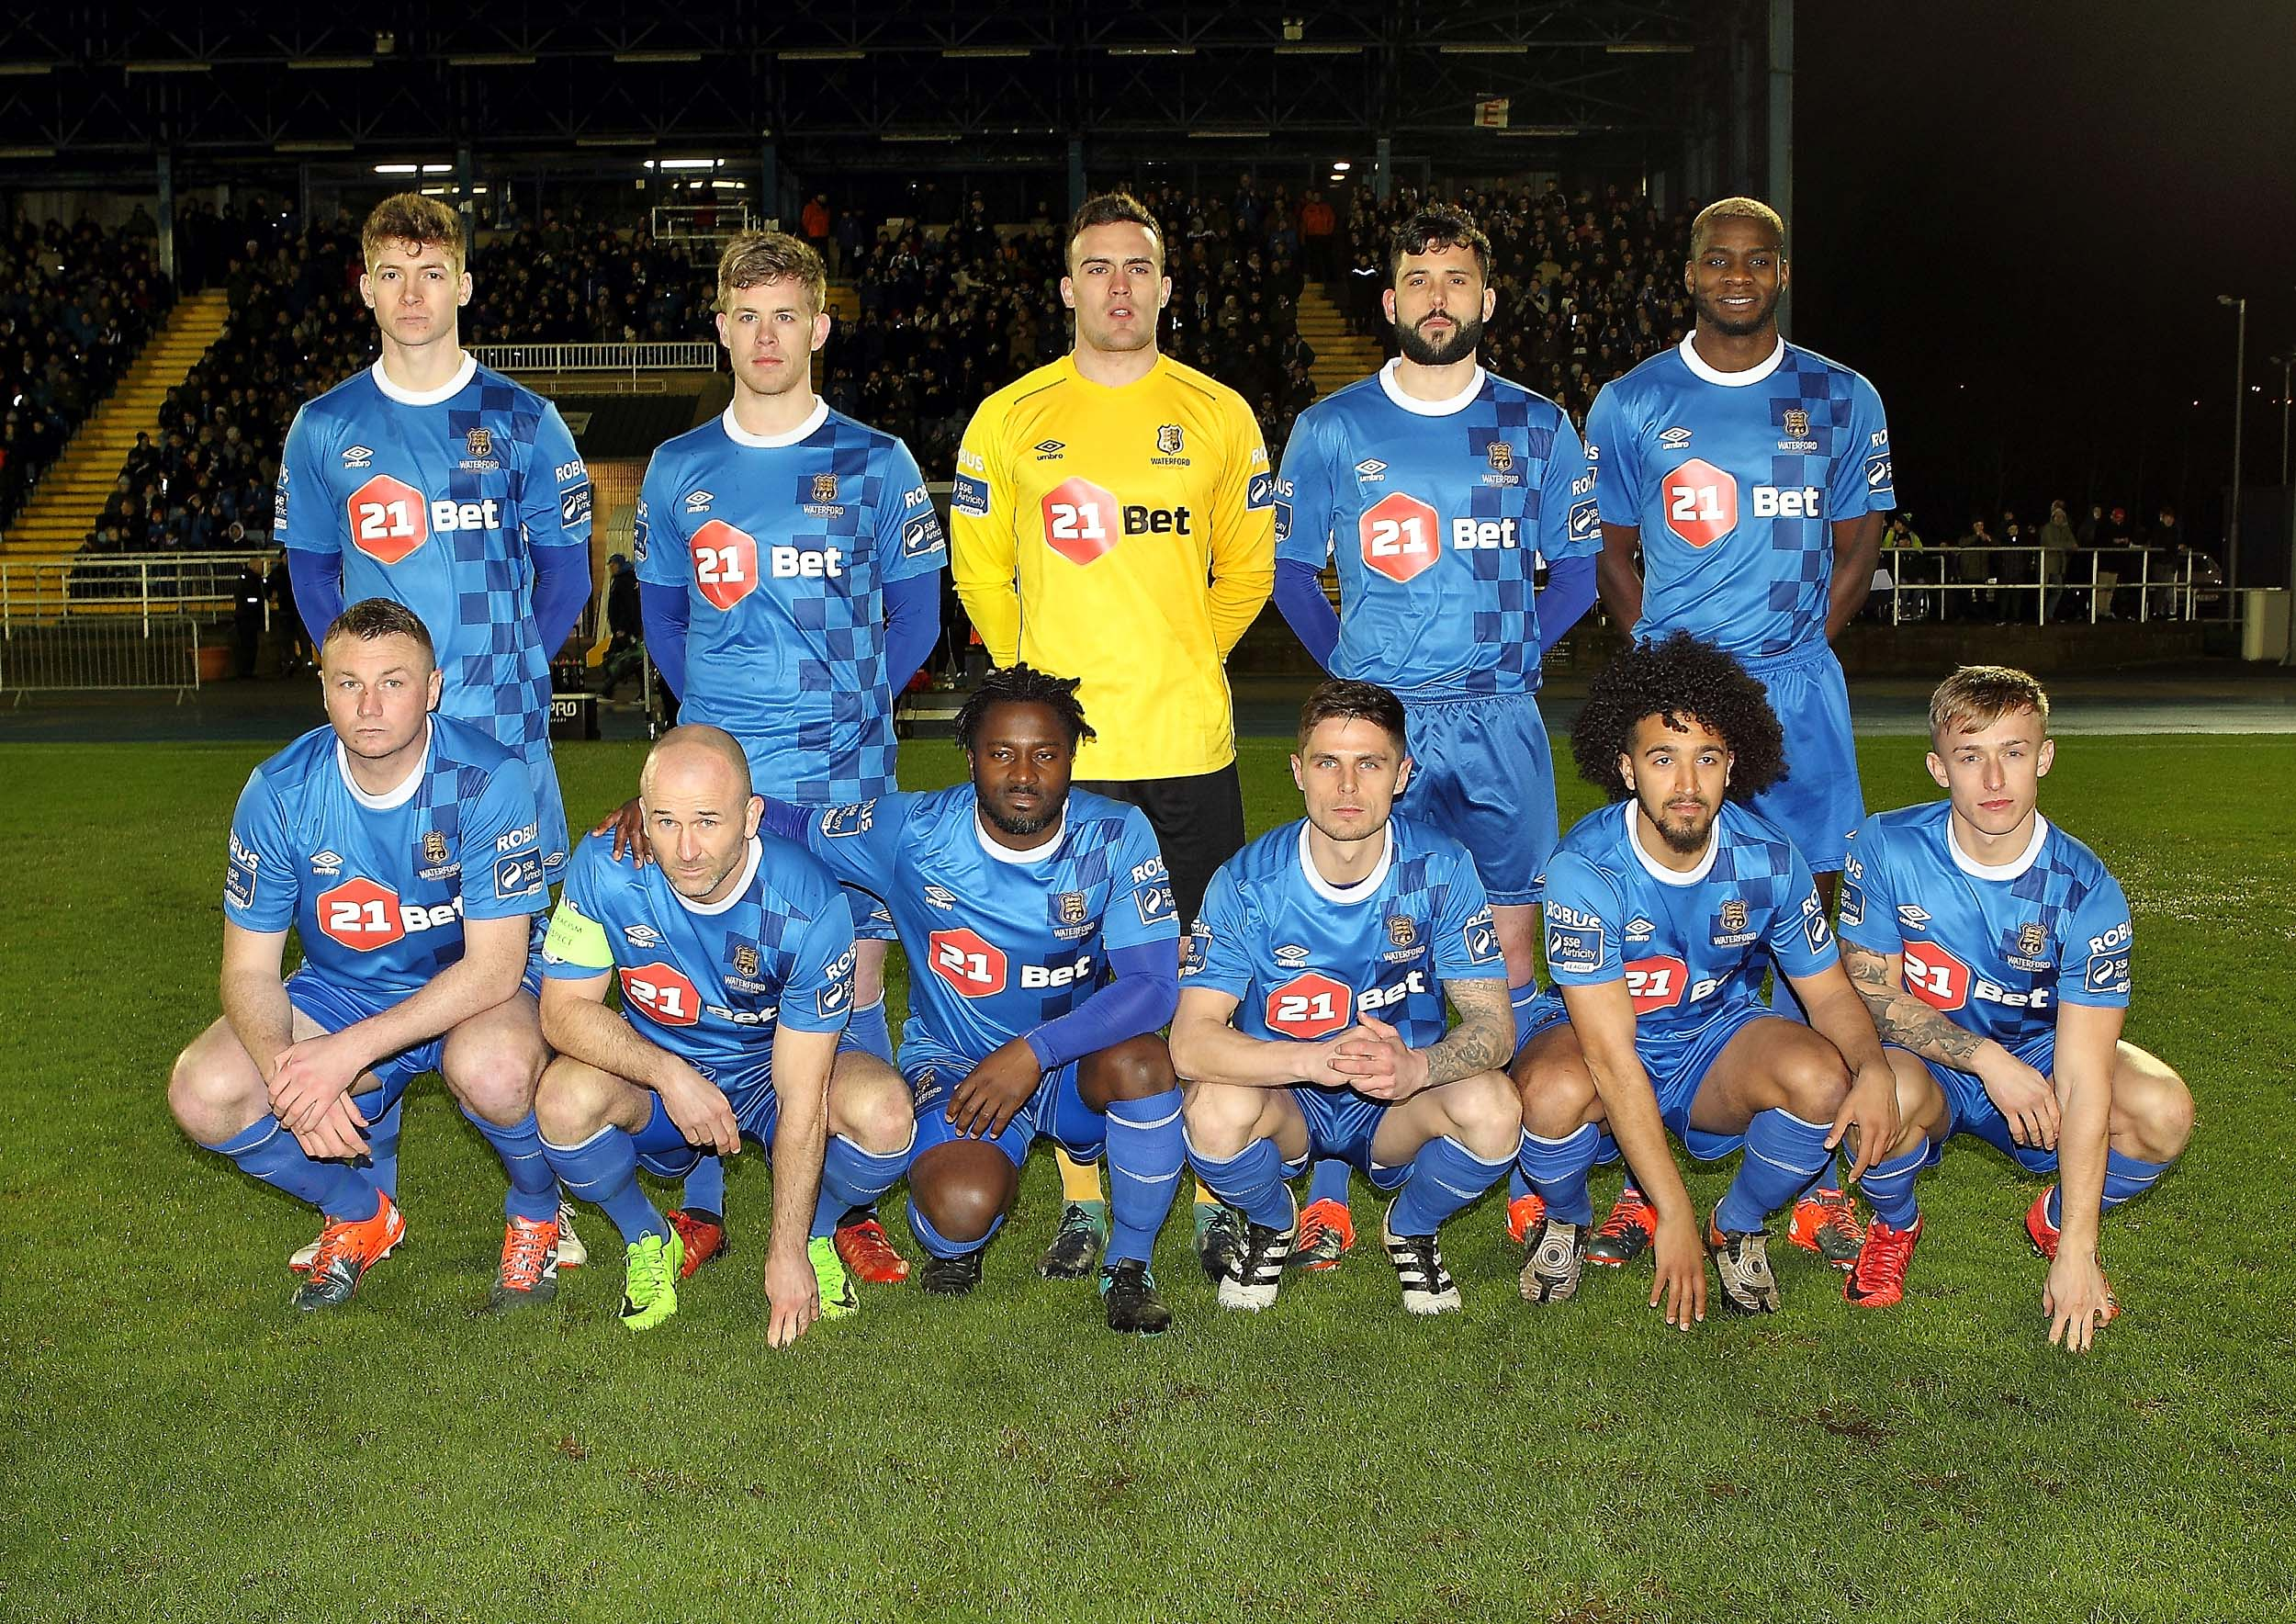 LISTEN BACK, Final moments as Waterford FC defeat Leesiders in Airtricity League Premier Division